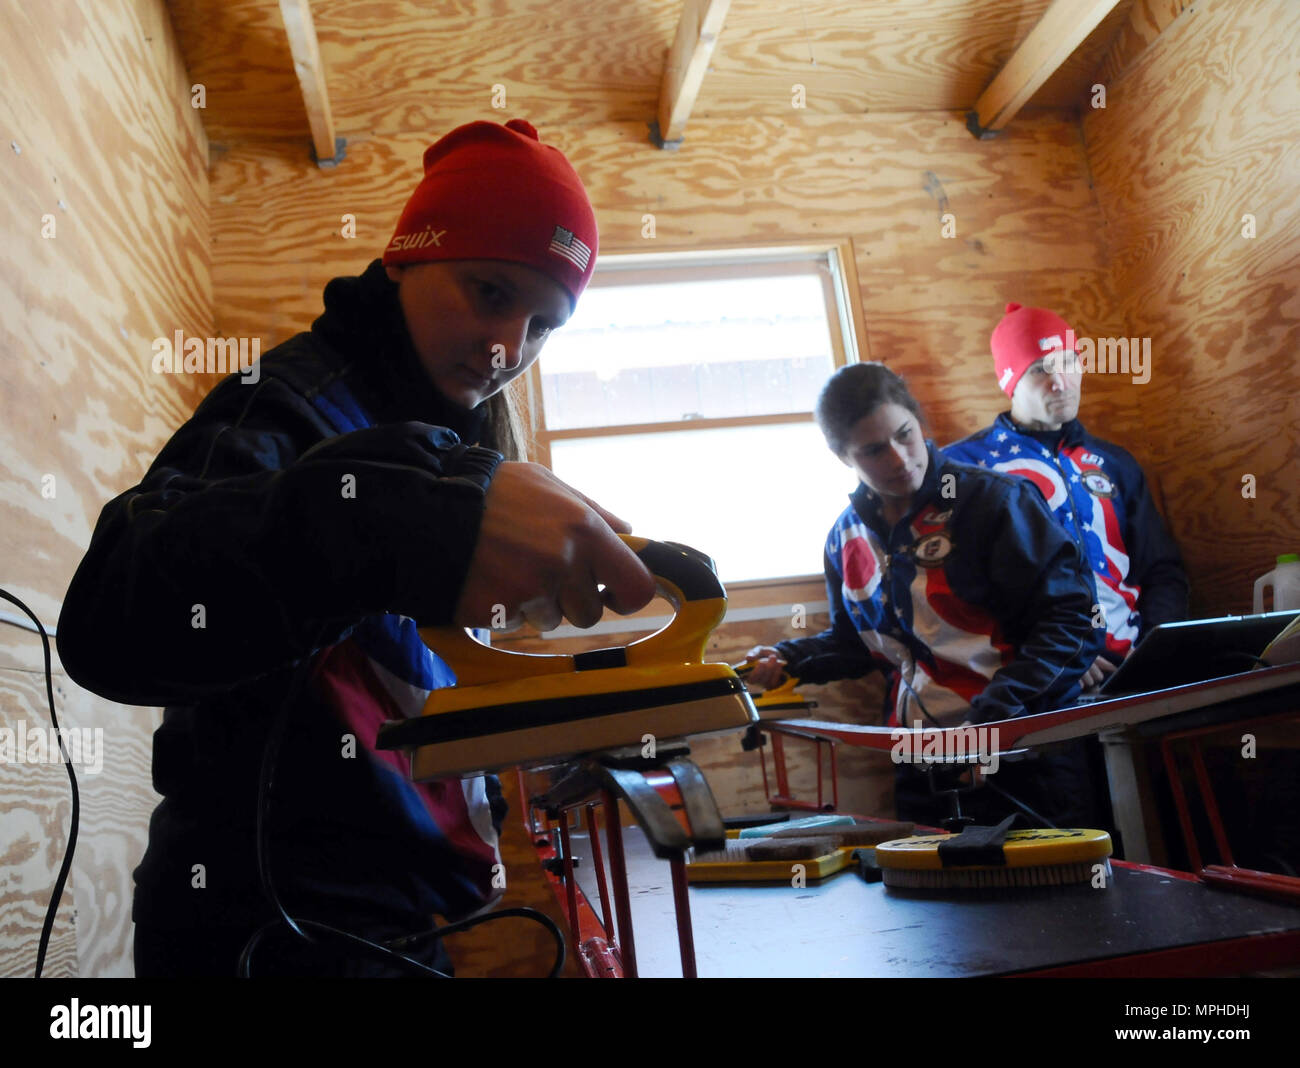 Spc. Lisa Roberts, a member of the Ohio National Guard, waxes her skis in preparation for her next race at Camp Ethan Allen Training Site, Jericho, Vt., March 4, 2017. Over 120 athletes from 23 different states are participating in the 2017 National Guard Bureau Biathlon Championships. (U.S. Army National Guard photo by 1st Lt. Aaron Smith) - Stock Image